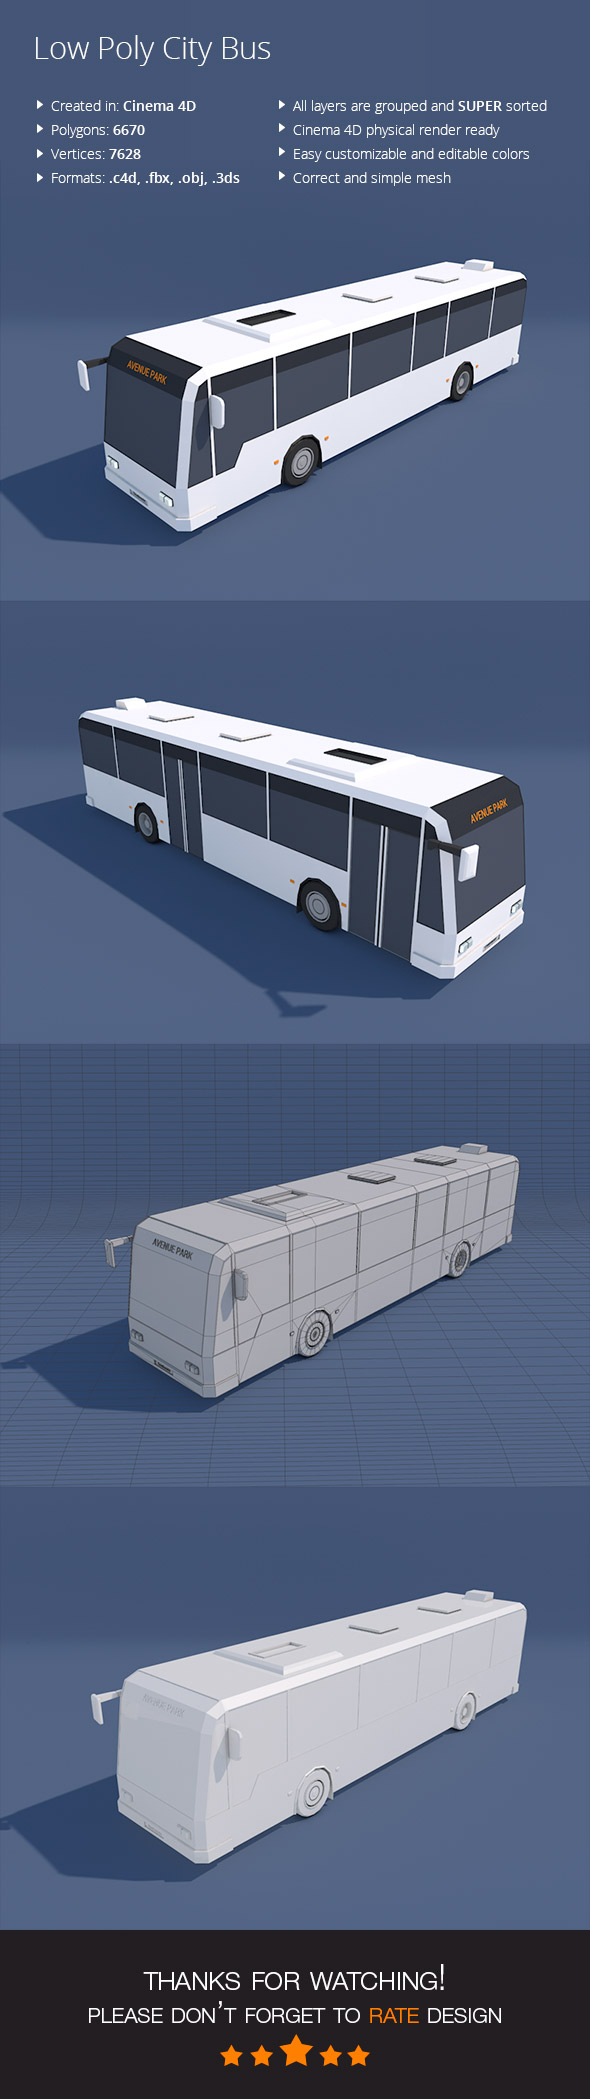 Low Poly City Bus - 3DOcean Item for Sale